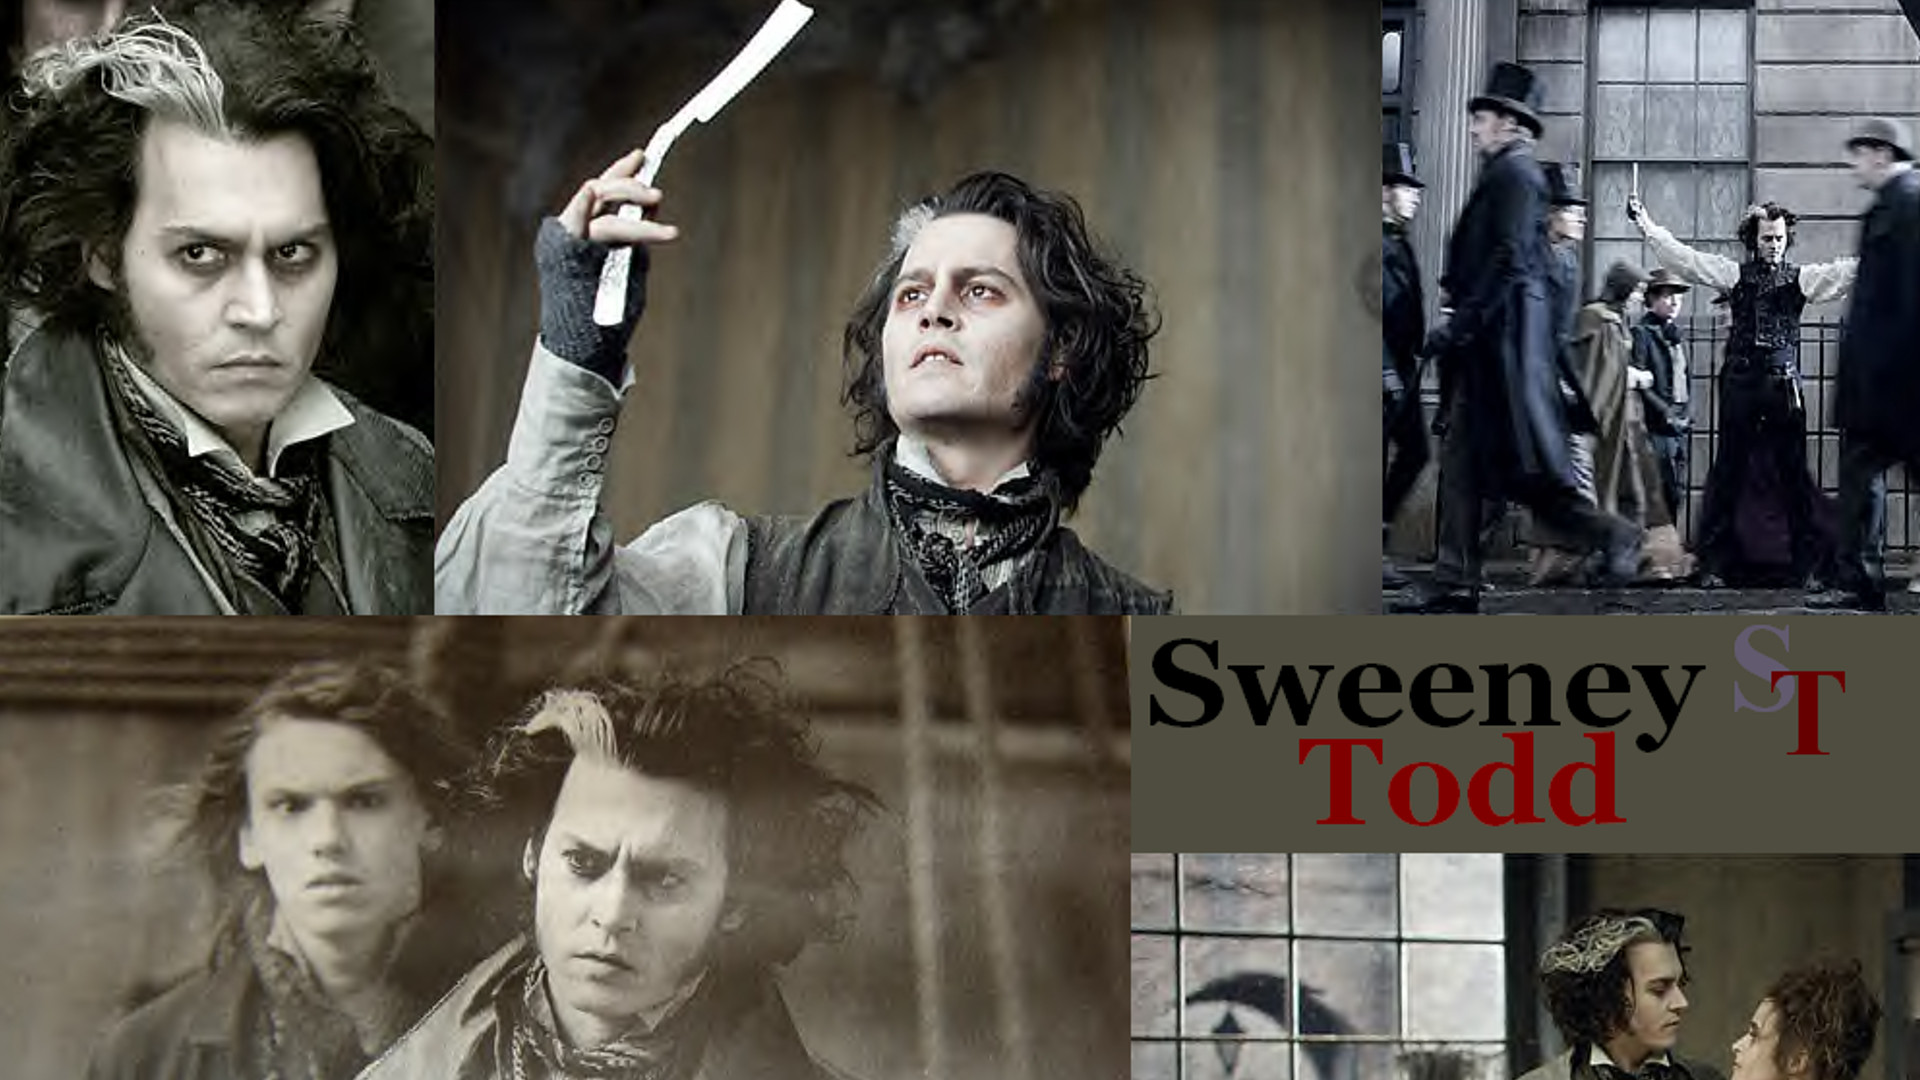 [PDF] Sweeney Todd: Vocal Score - Book Library - docobook.com